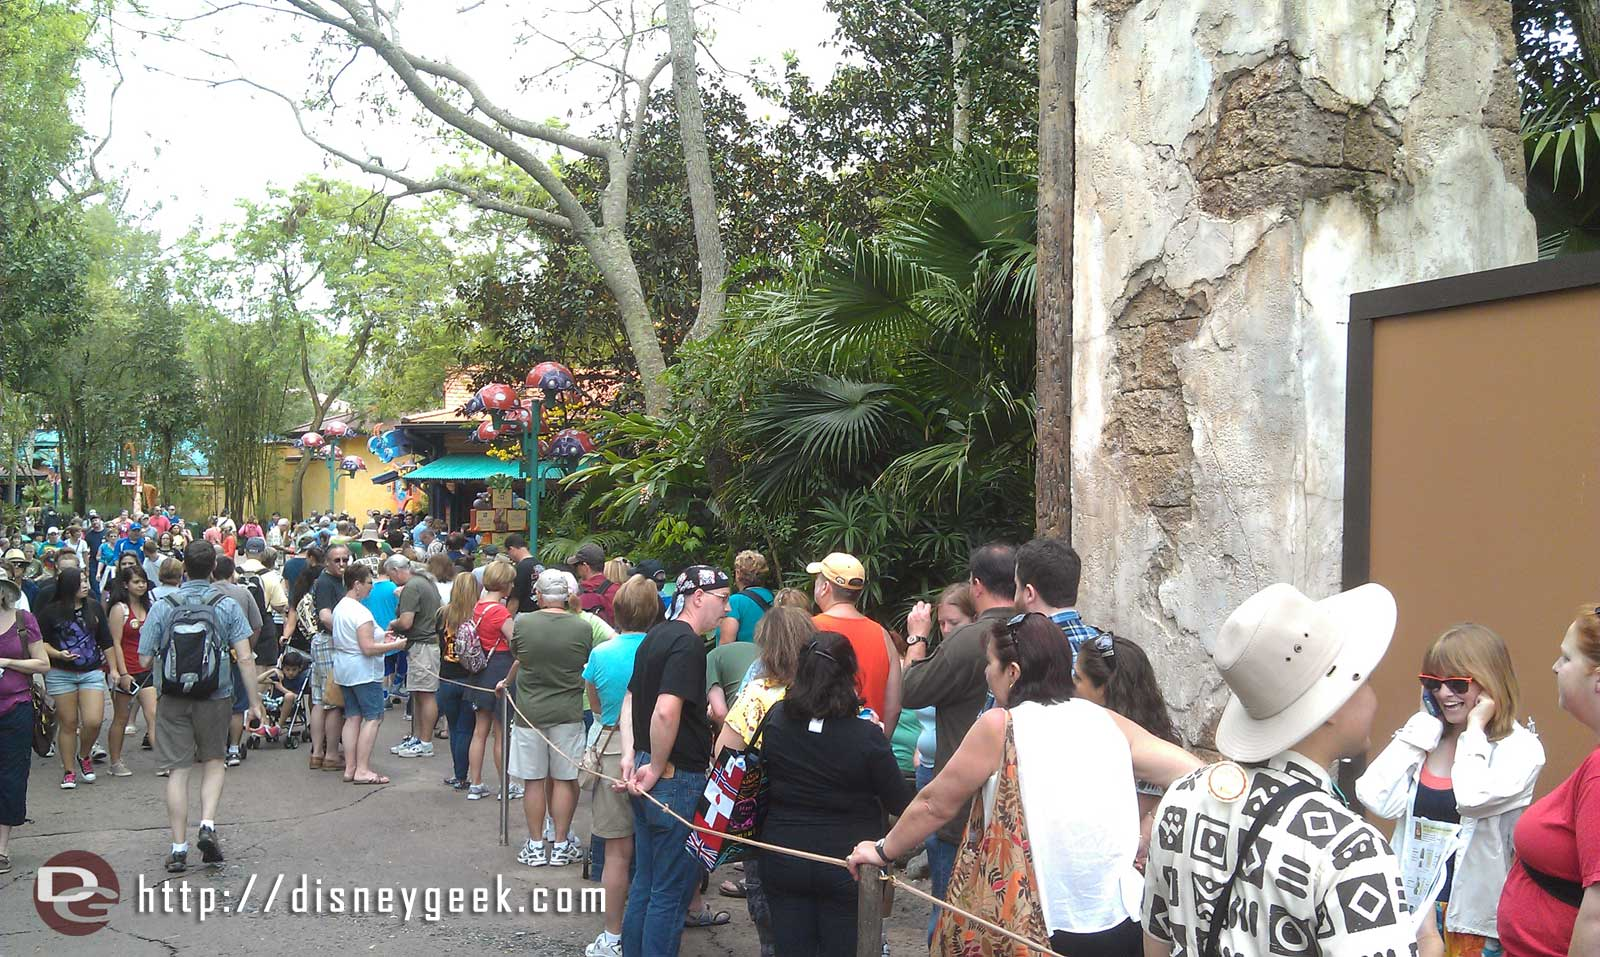 The merchandise line still stretches to the bridge to Africa #DAK15